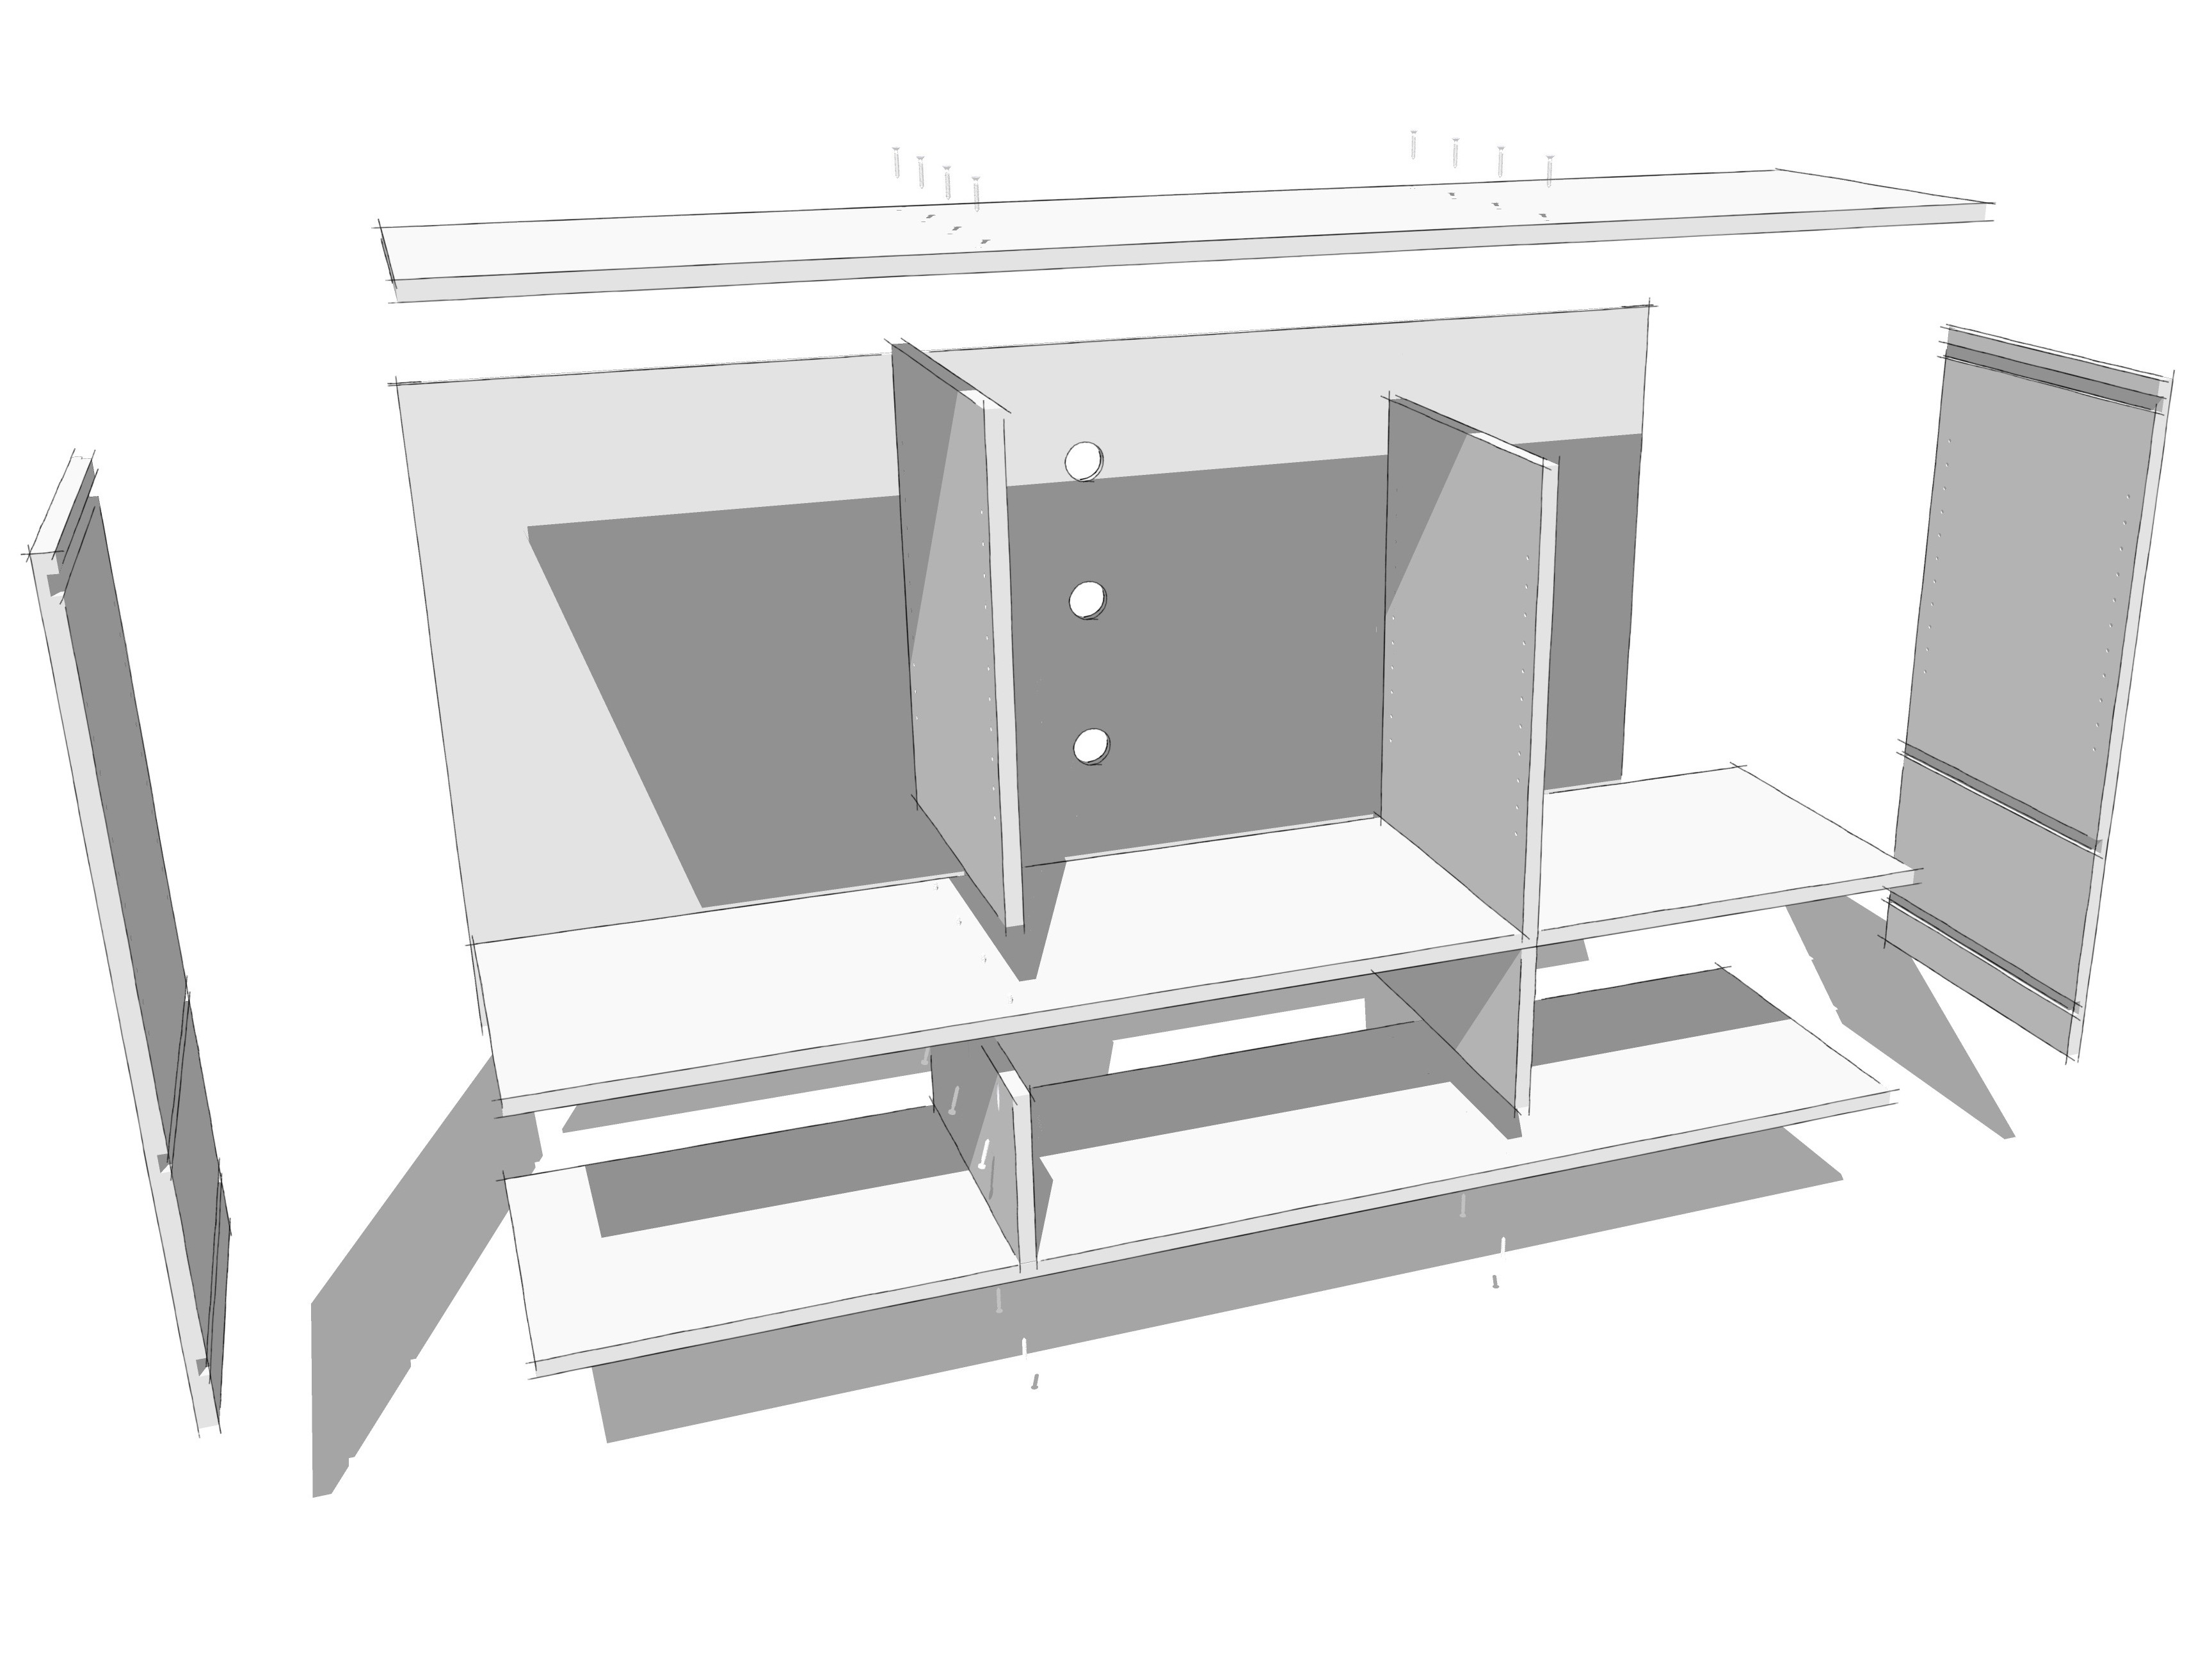 Best Kitchen Gallery: Experimenting With Sketchy Edges Jeff Branch Woodworking of Kitchen Cabinet Exploded View on rachelxblog.com